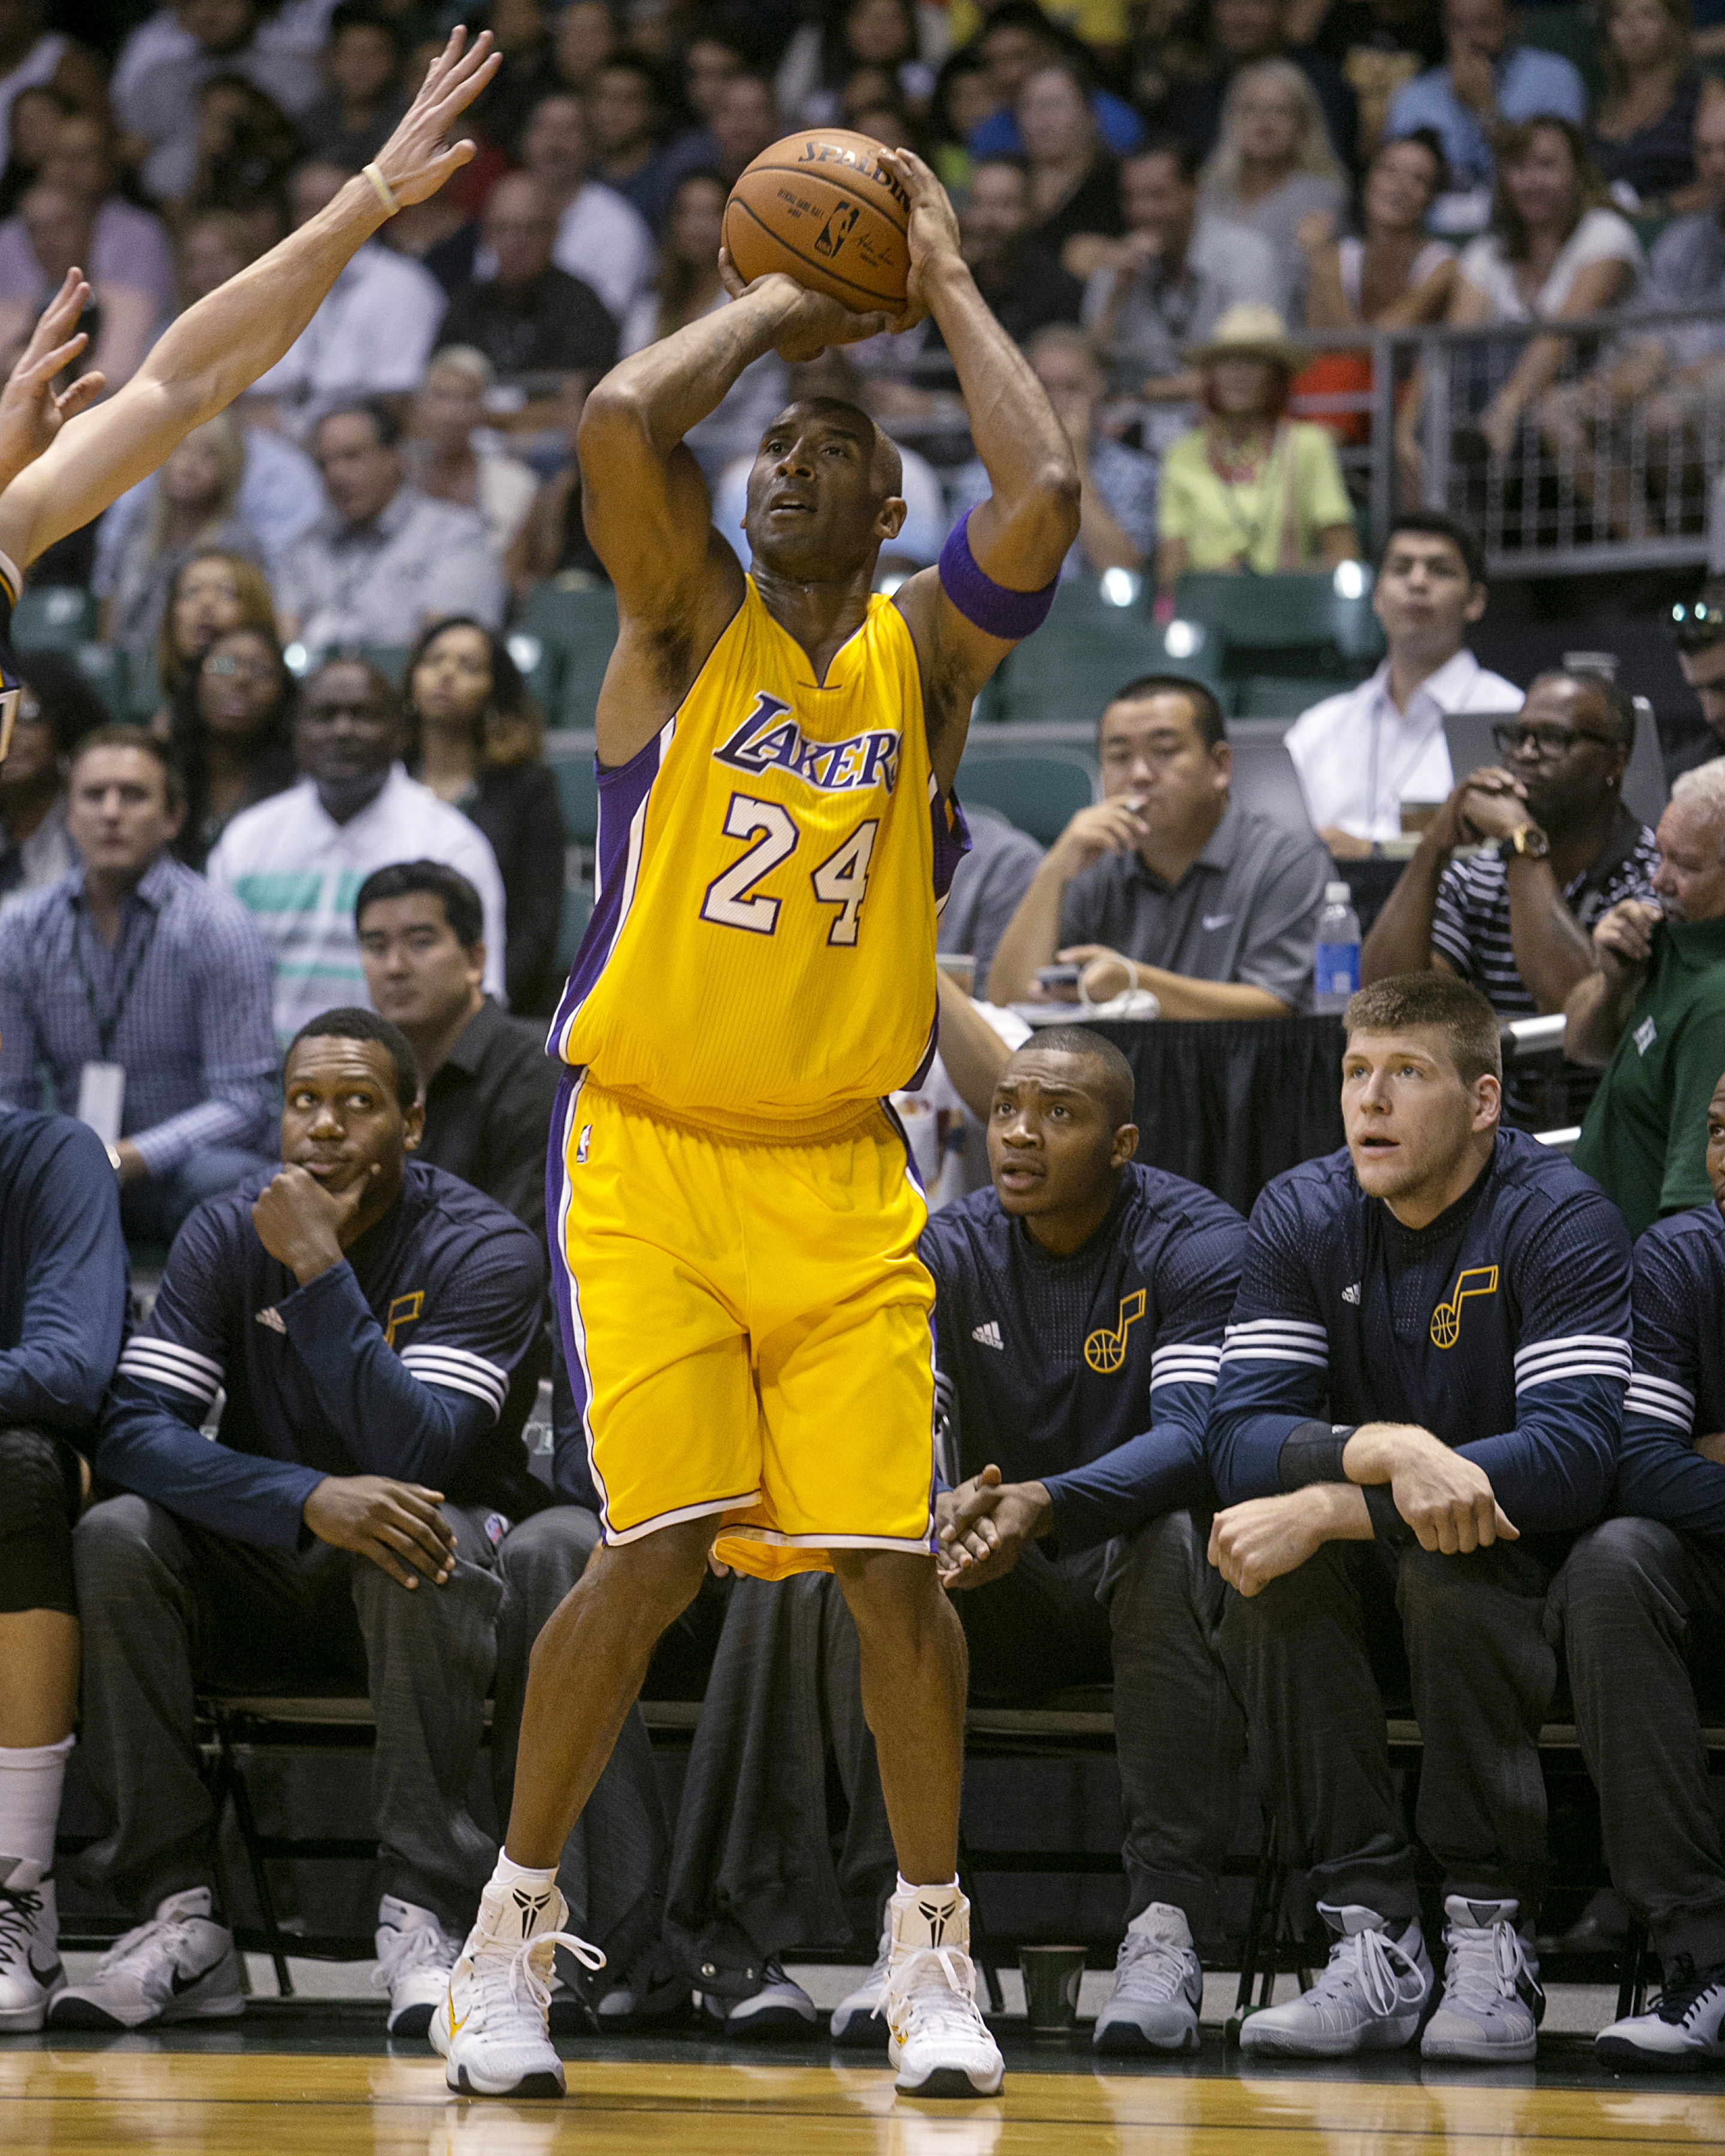 Los Angeles Lakers guard Kobe Bryant (24) attempts a three point shot against Utah during the first quarter of a preseason NBA basketball game, Sunday, Oct. 4. 2015, in Honolulu. (AP Photo/Marco Garcia)